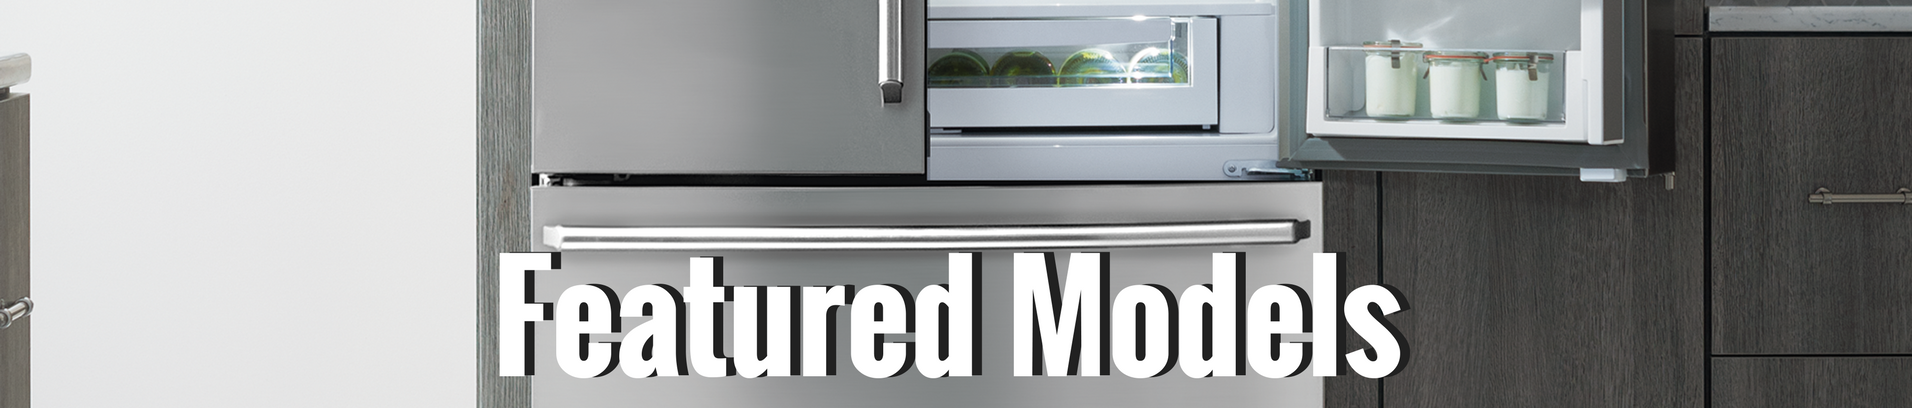 Anatomy of Refrigerators Featured Models Banner